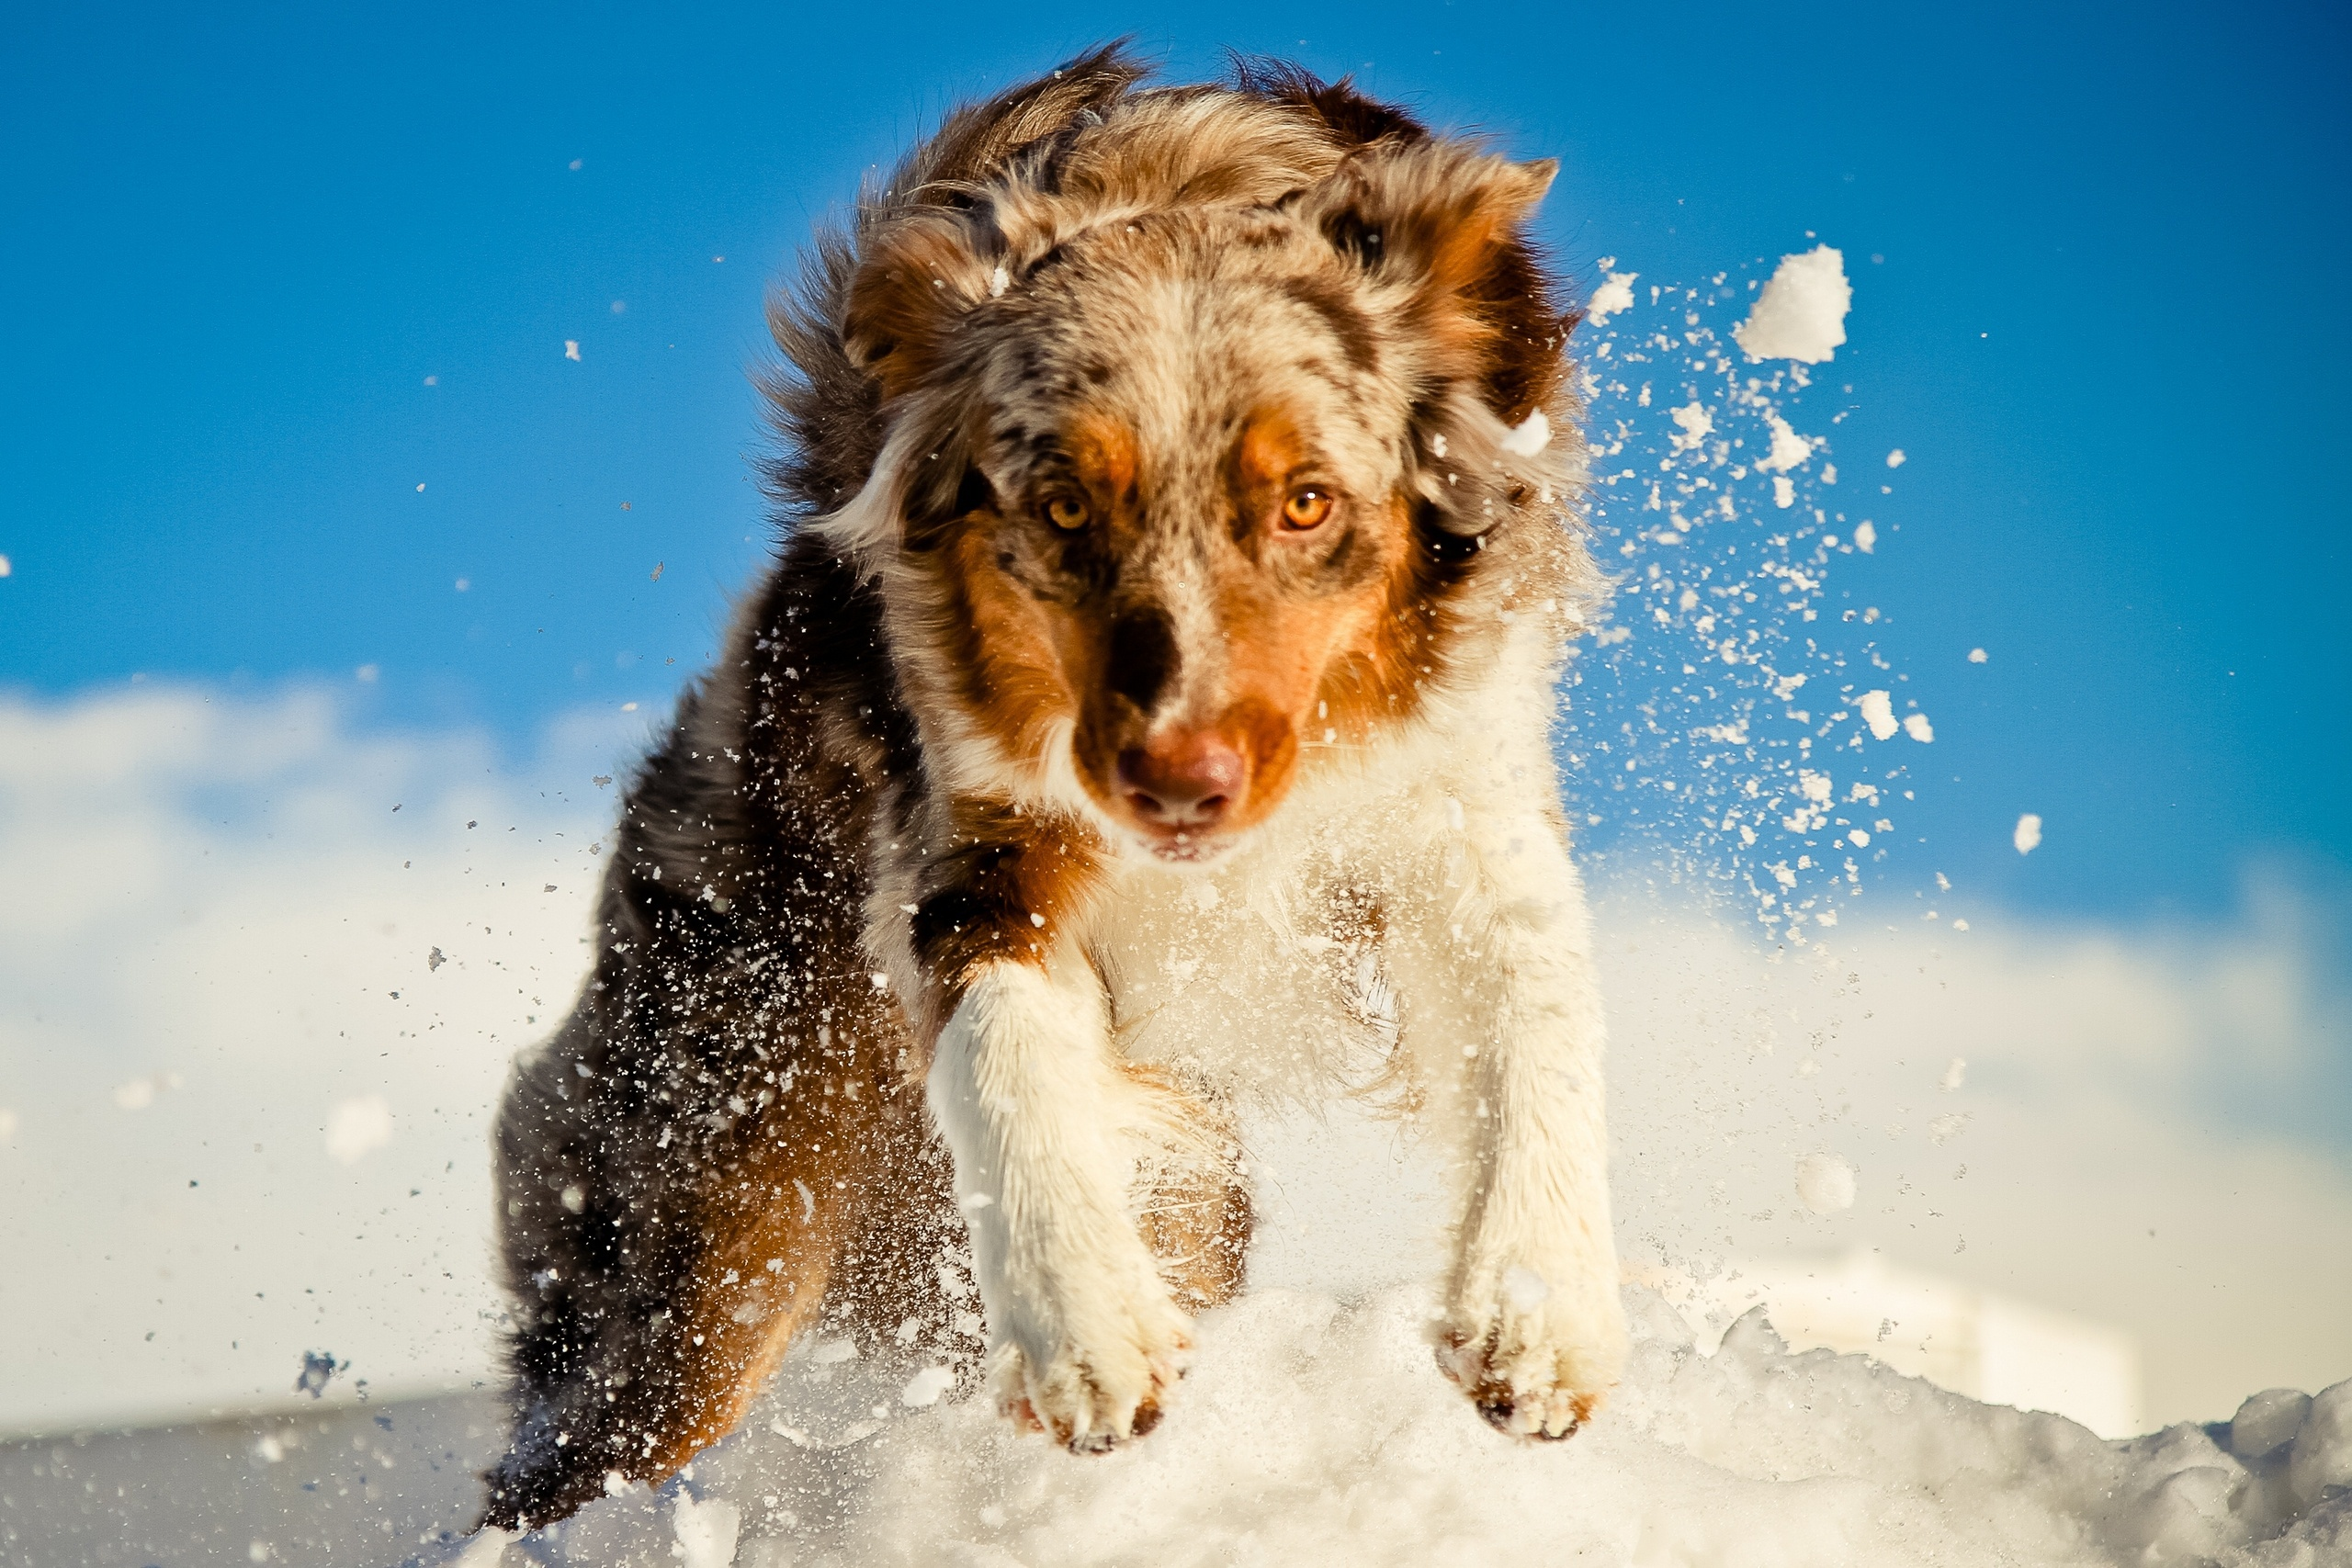 Australian Shepherd in snow wallpapers and images   wallpapers 2560x1707